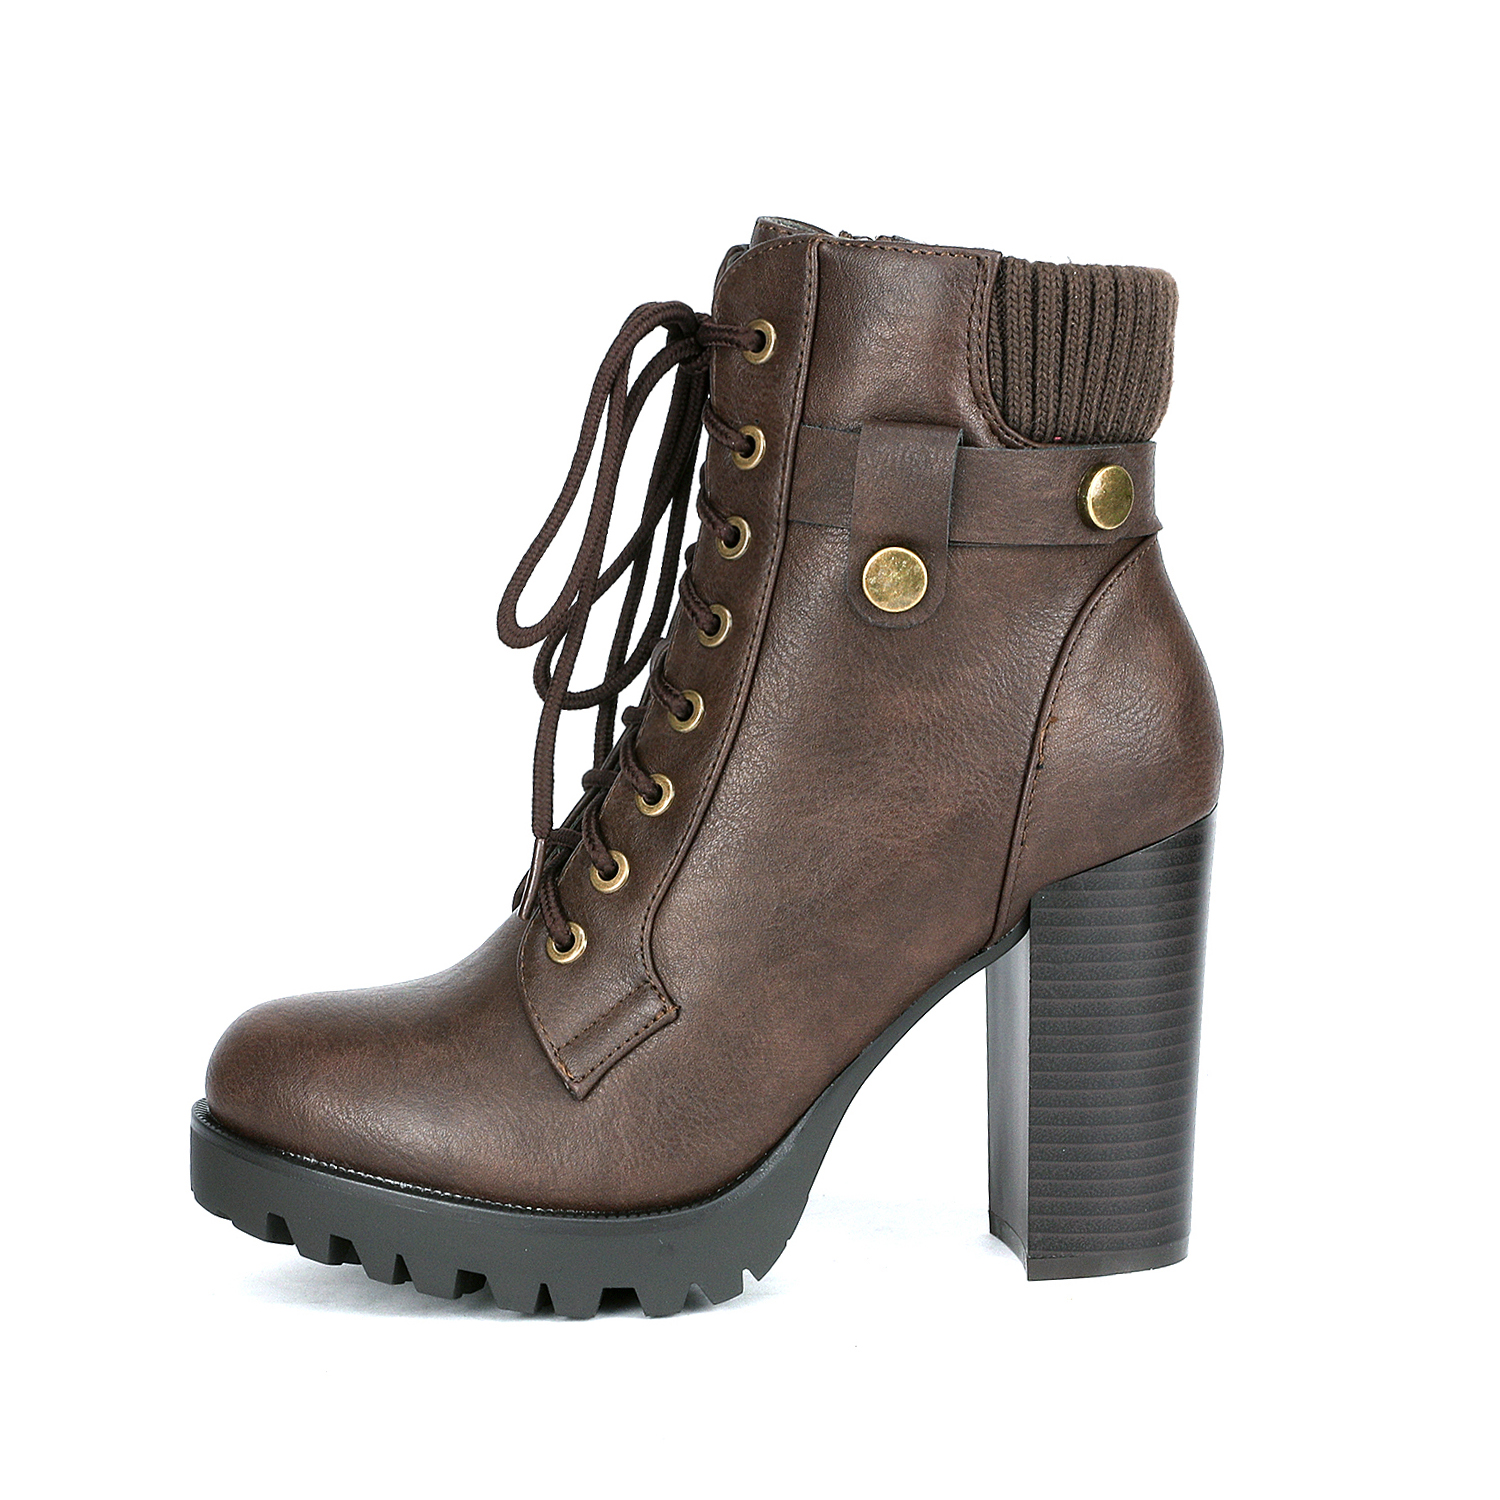 DREAM PAIRS Damens's Damens's Damens's SCANDL Fashion Chunky Lace up Heel Ankle High 249c75